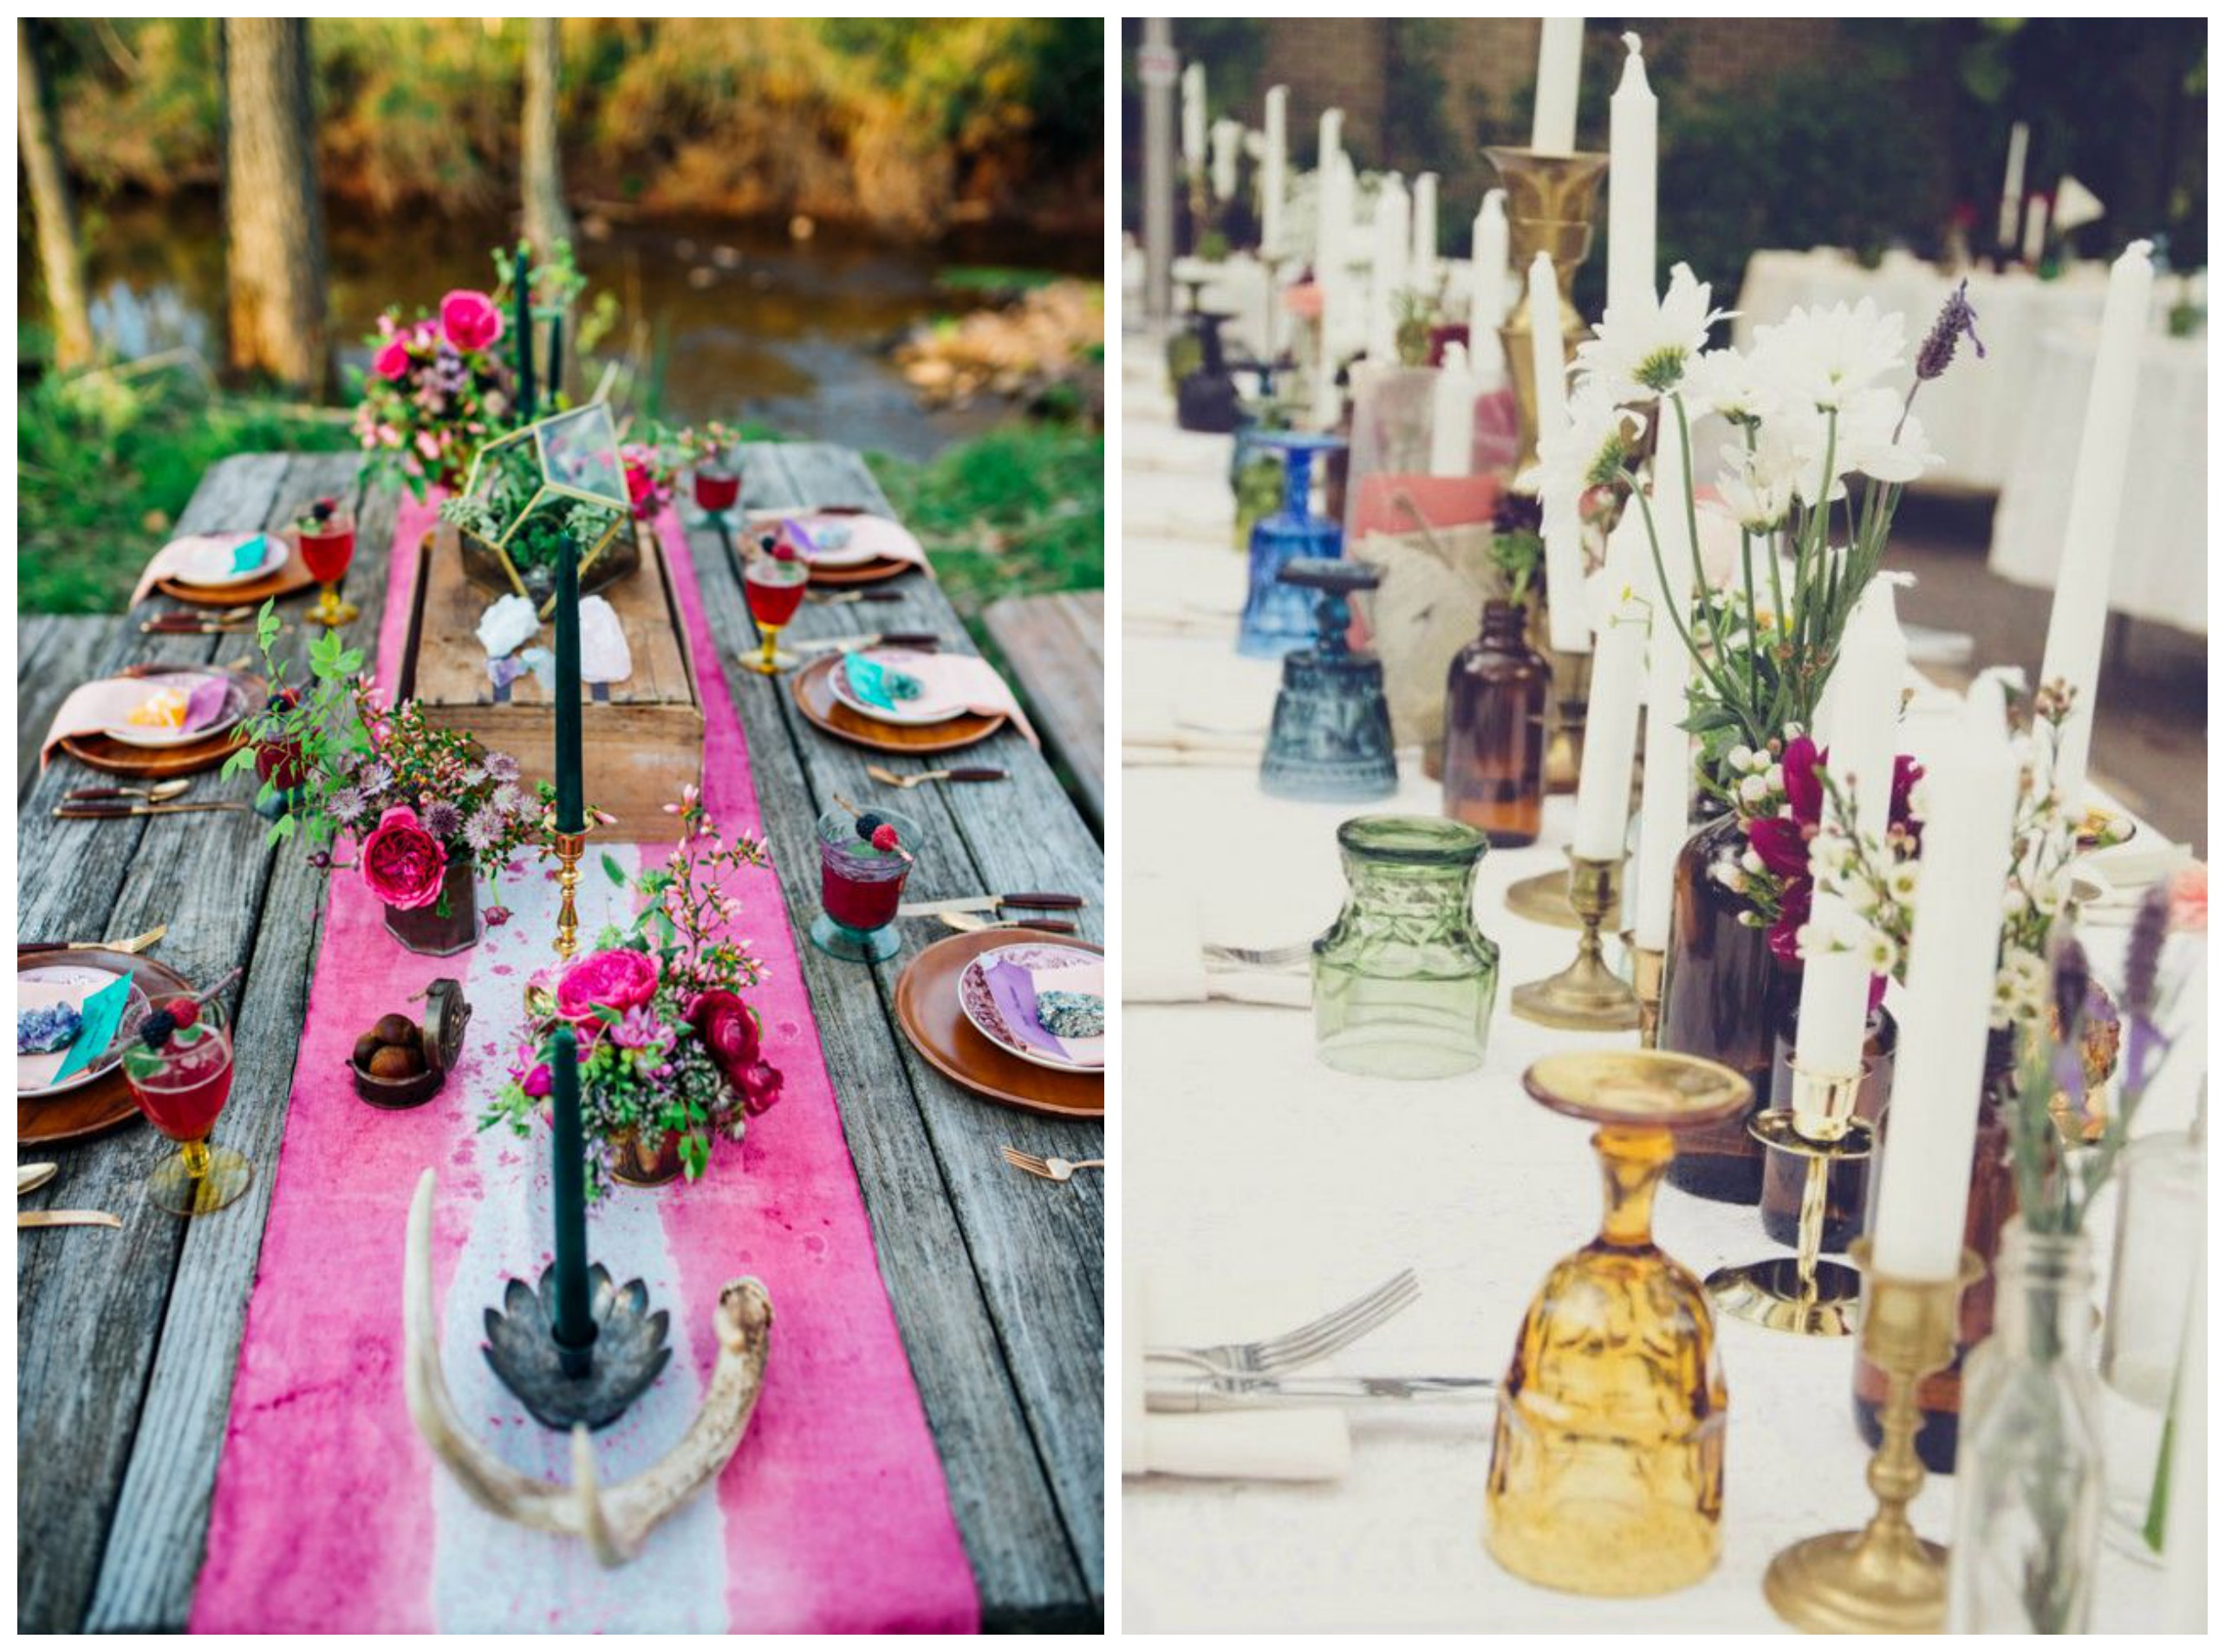 Tendencias en decoracion 2016 en el pais de las bodas for Decoracion tendencias 2016